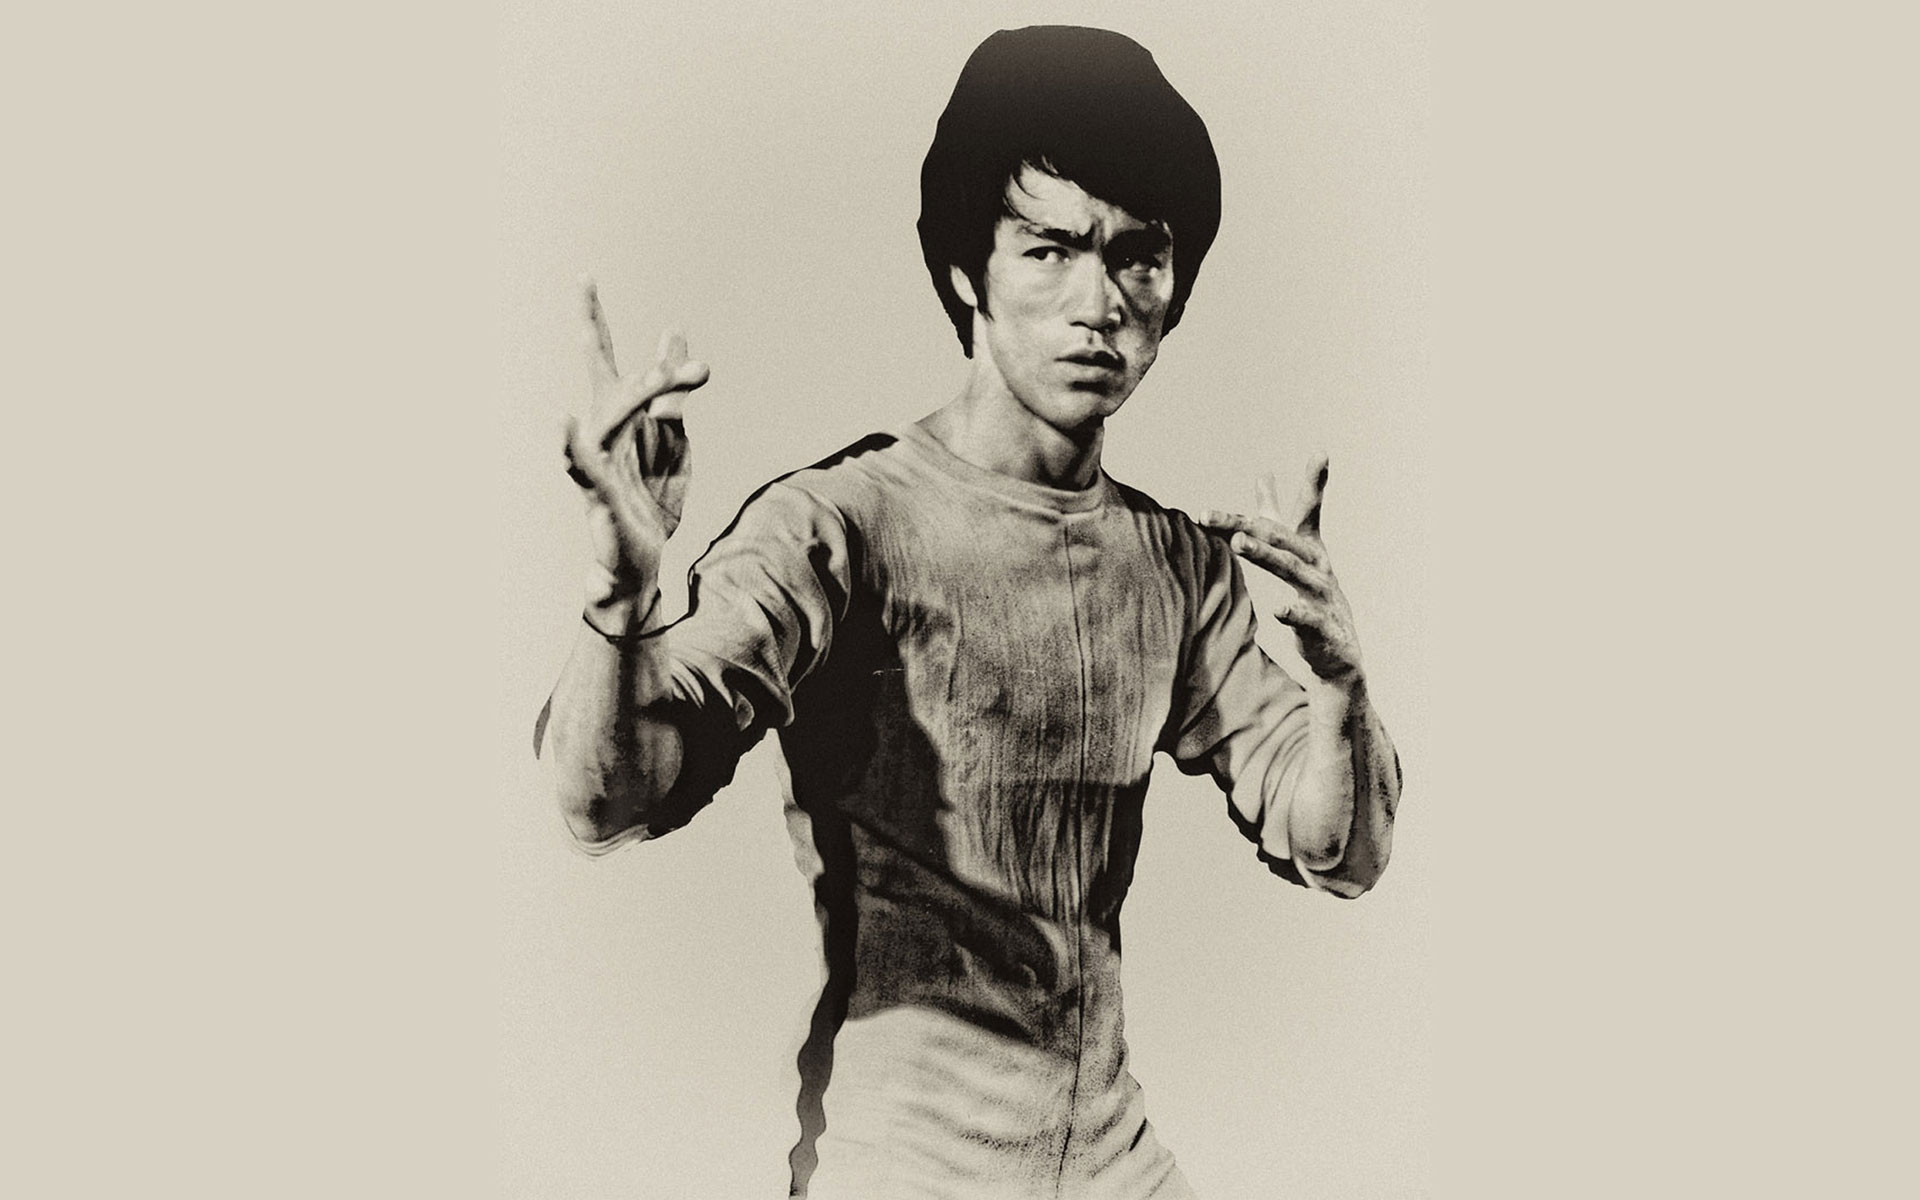 BRUCE LEE'S MMA LEGACY: BE WATER